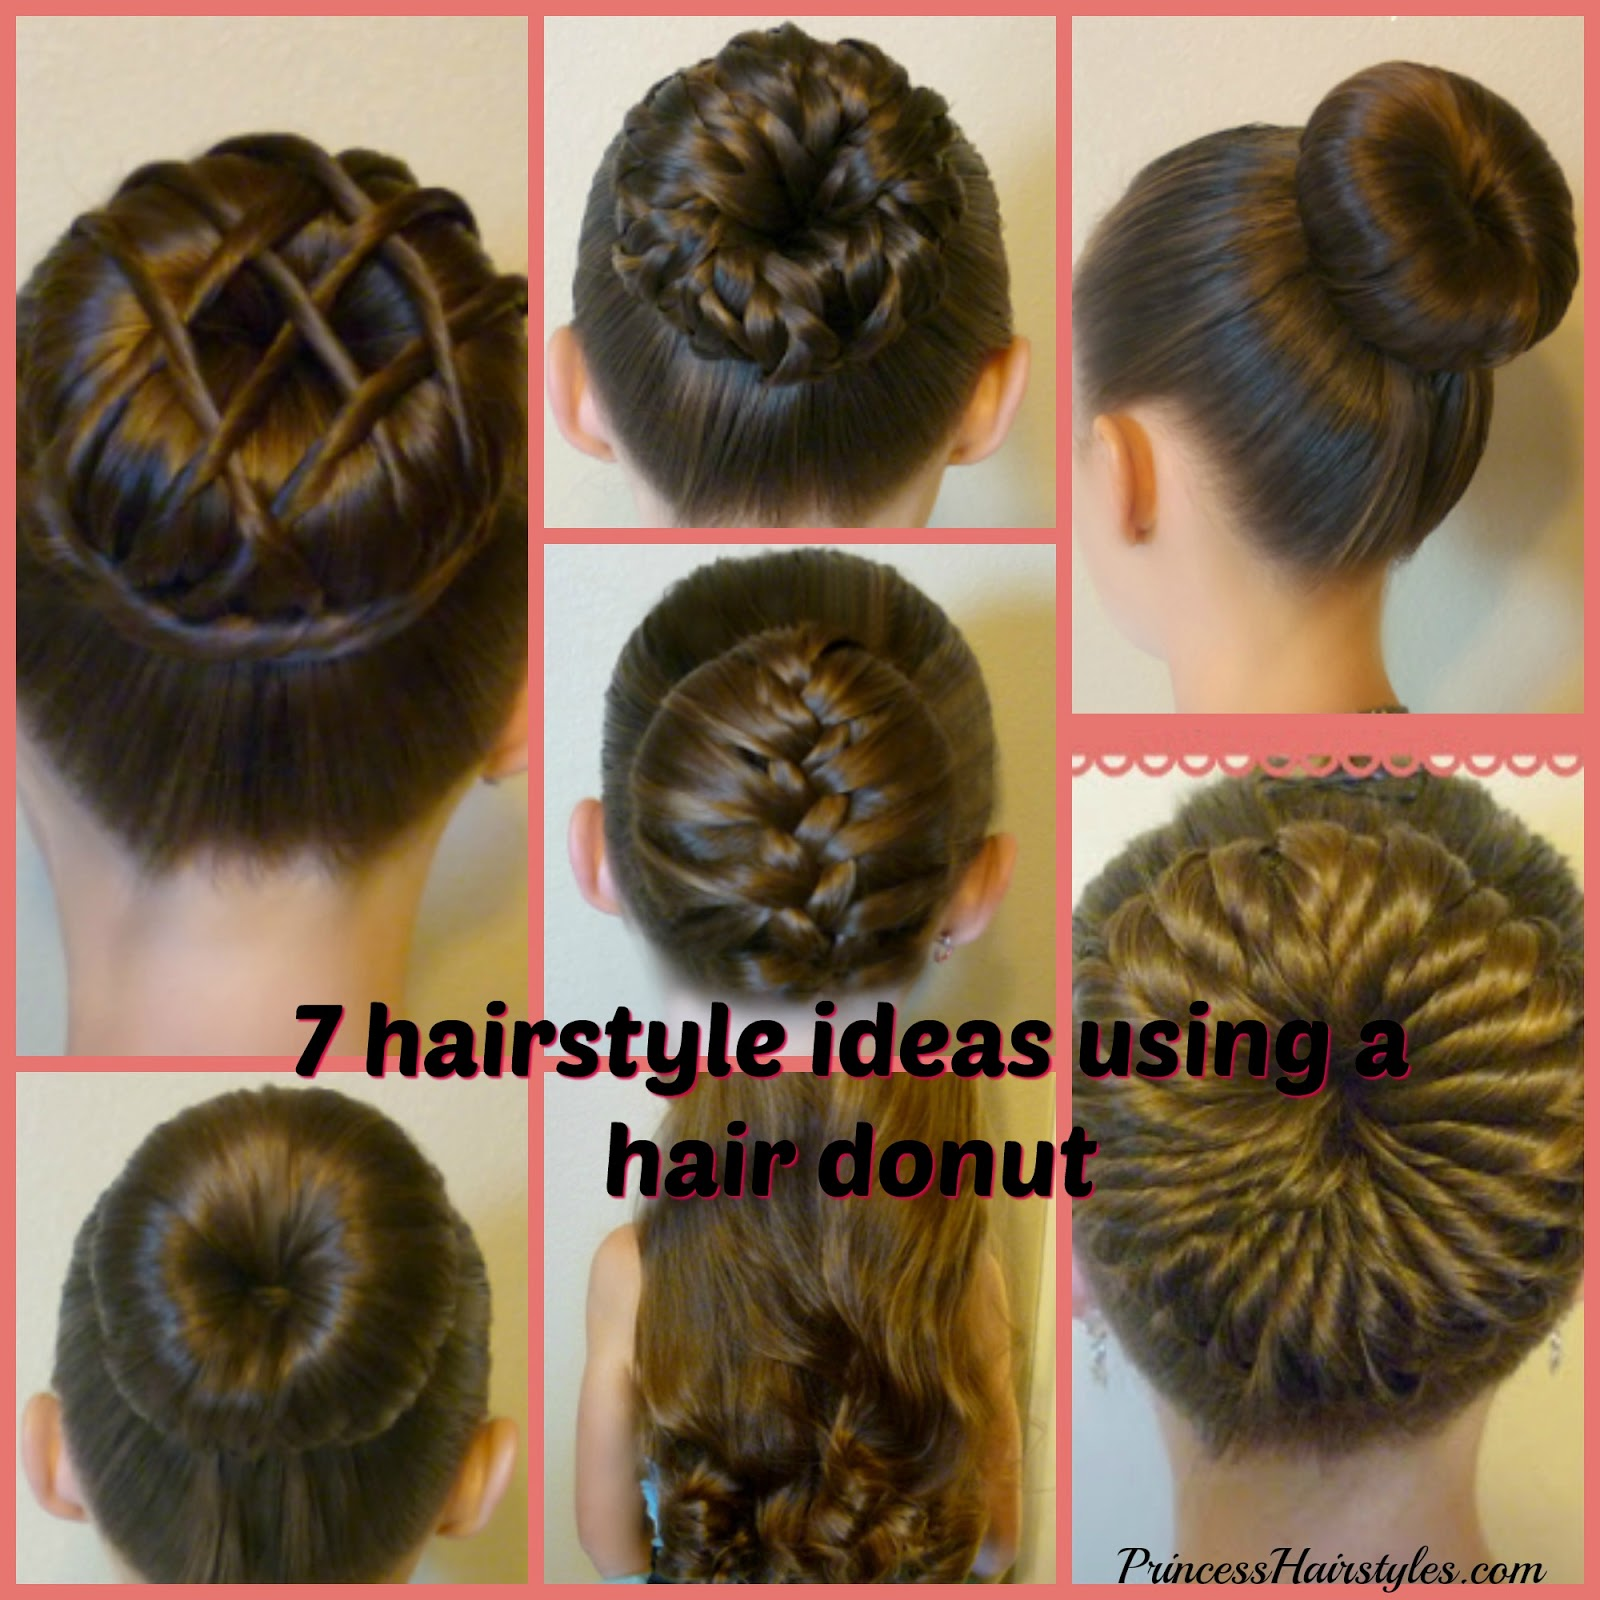 7 ways to make a bun using a hair donut! | hairstyles for